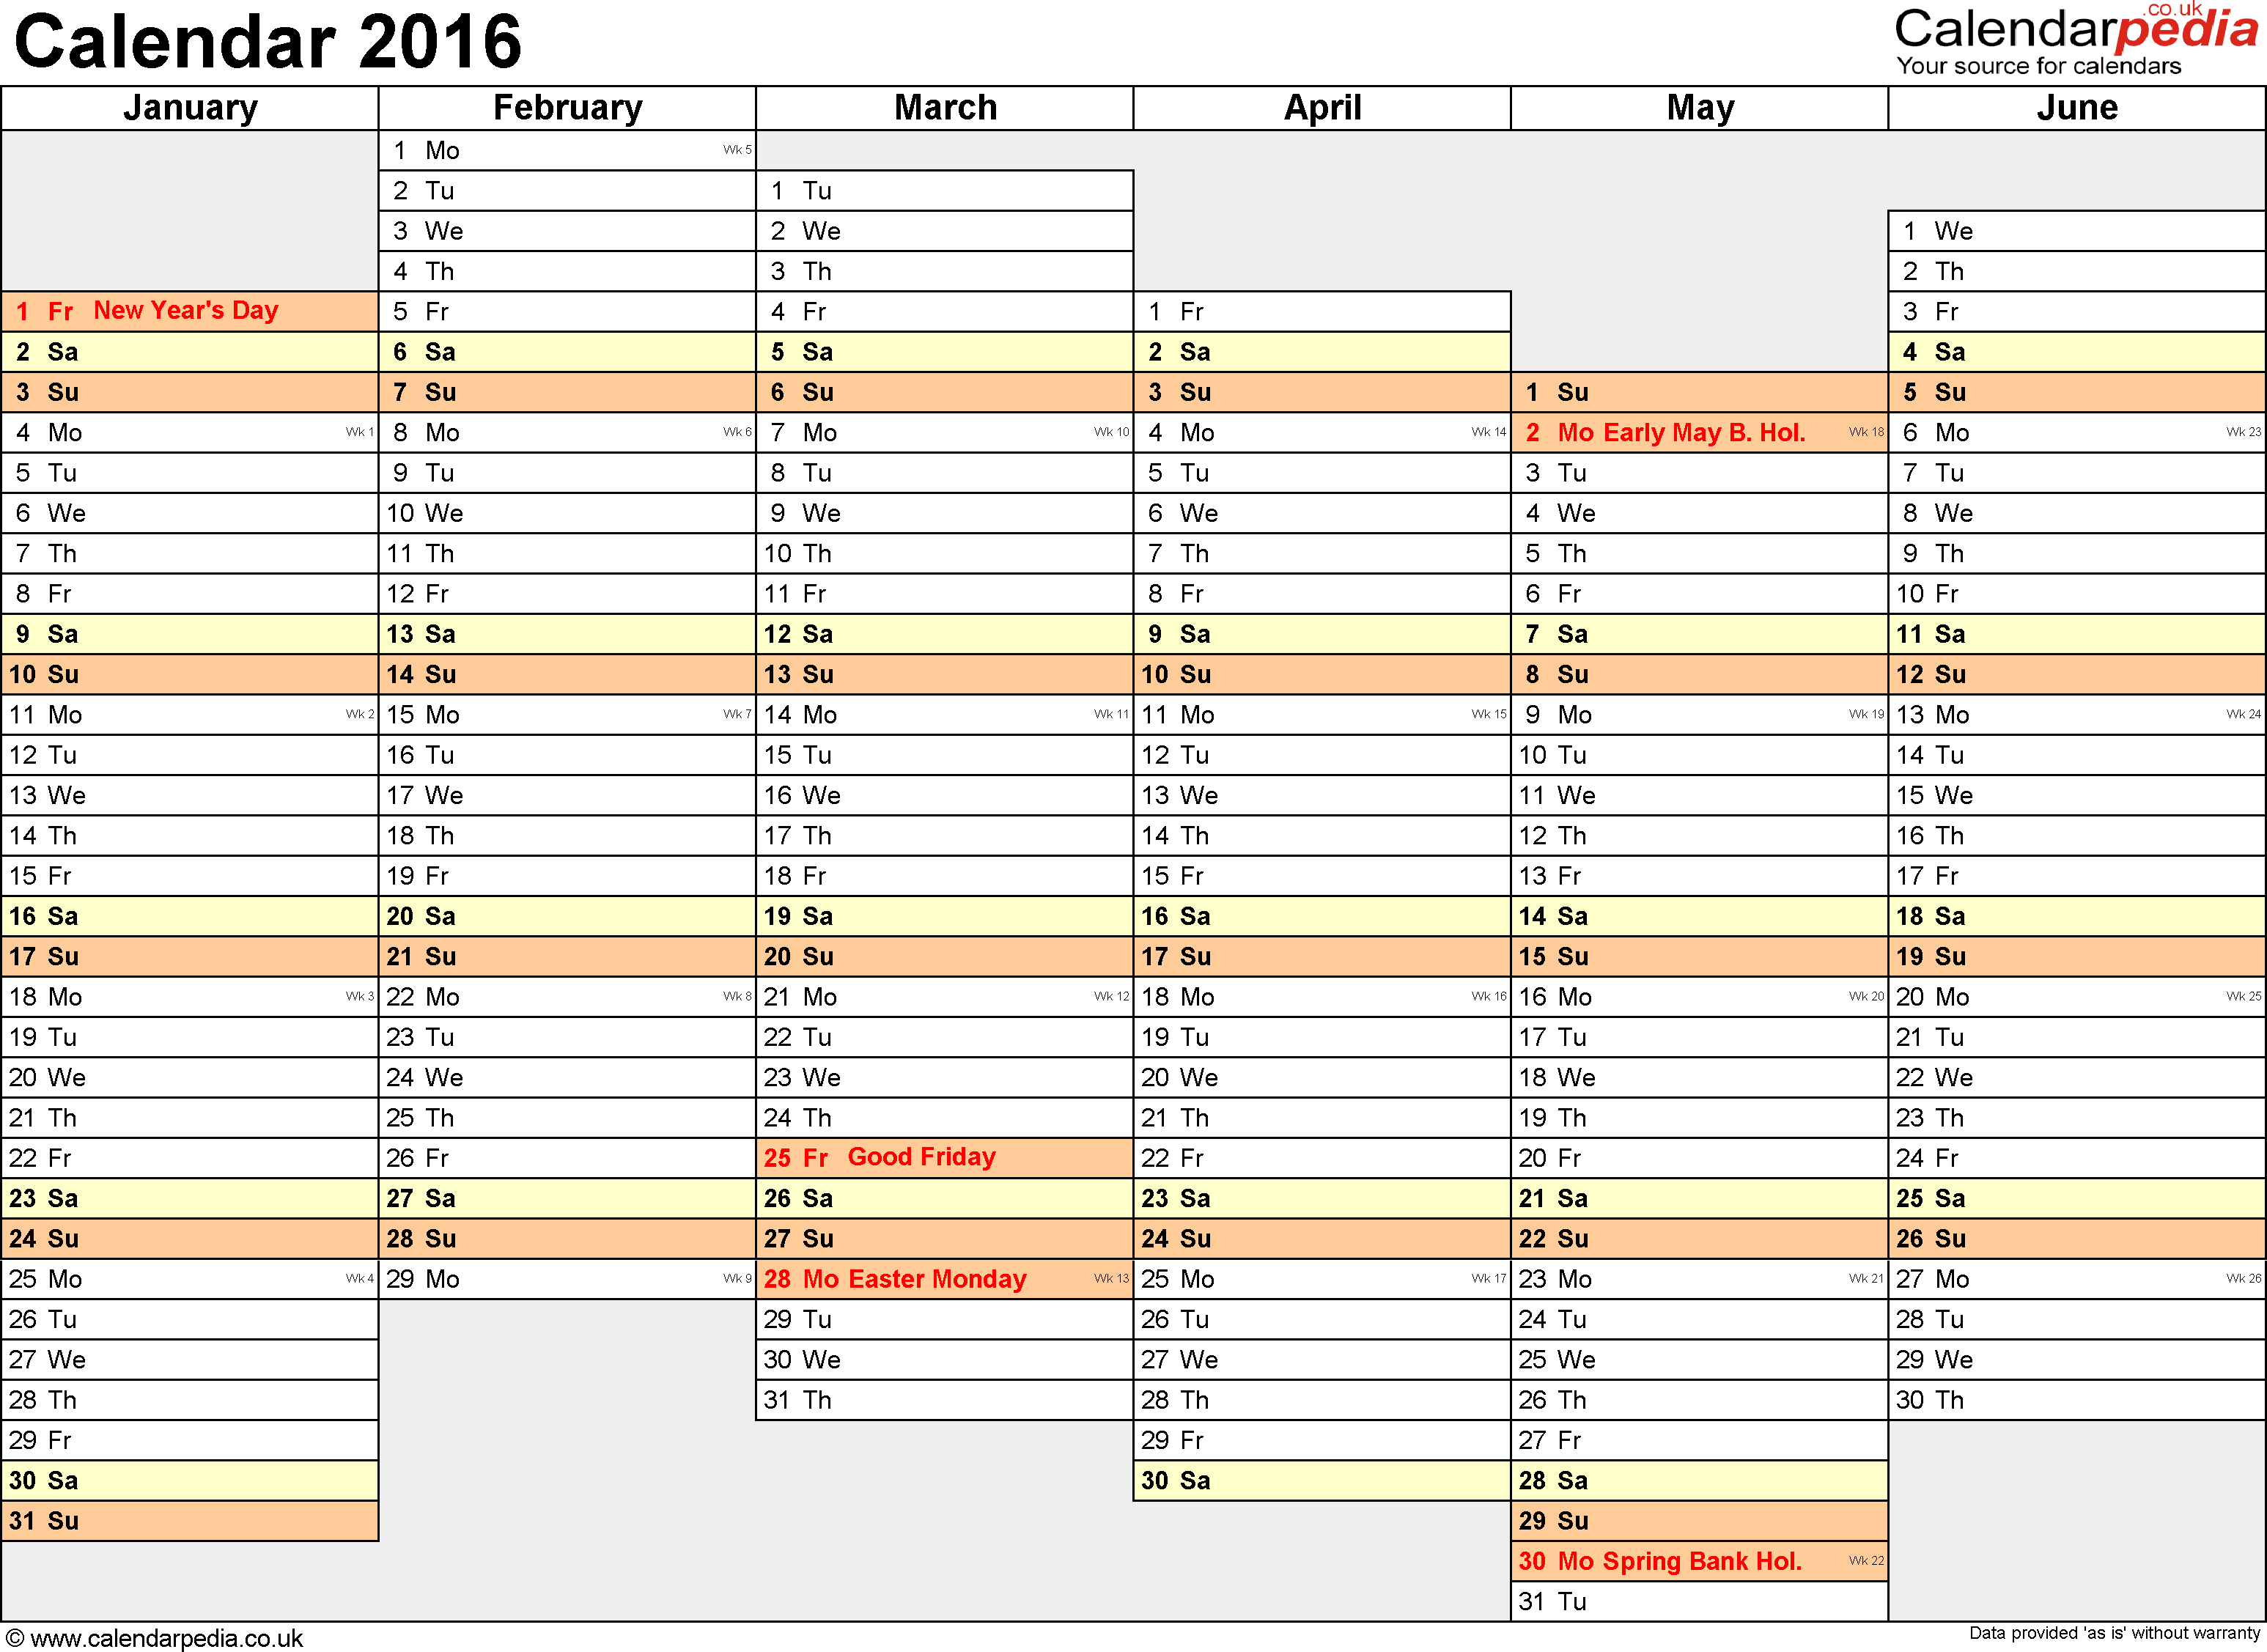 excel calendar uk printable templates xls xlsx template 4 yearly calendar 2016 as excel template landscape orientation a4 2